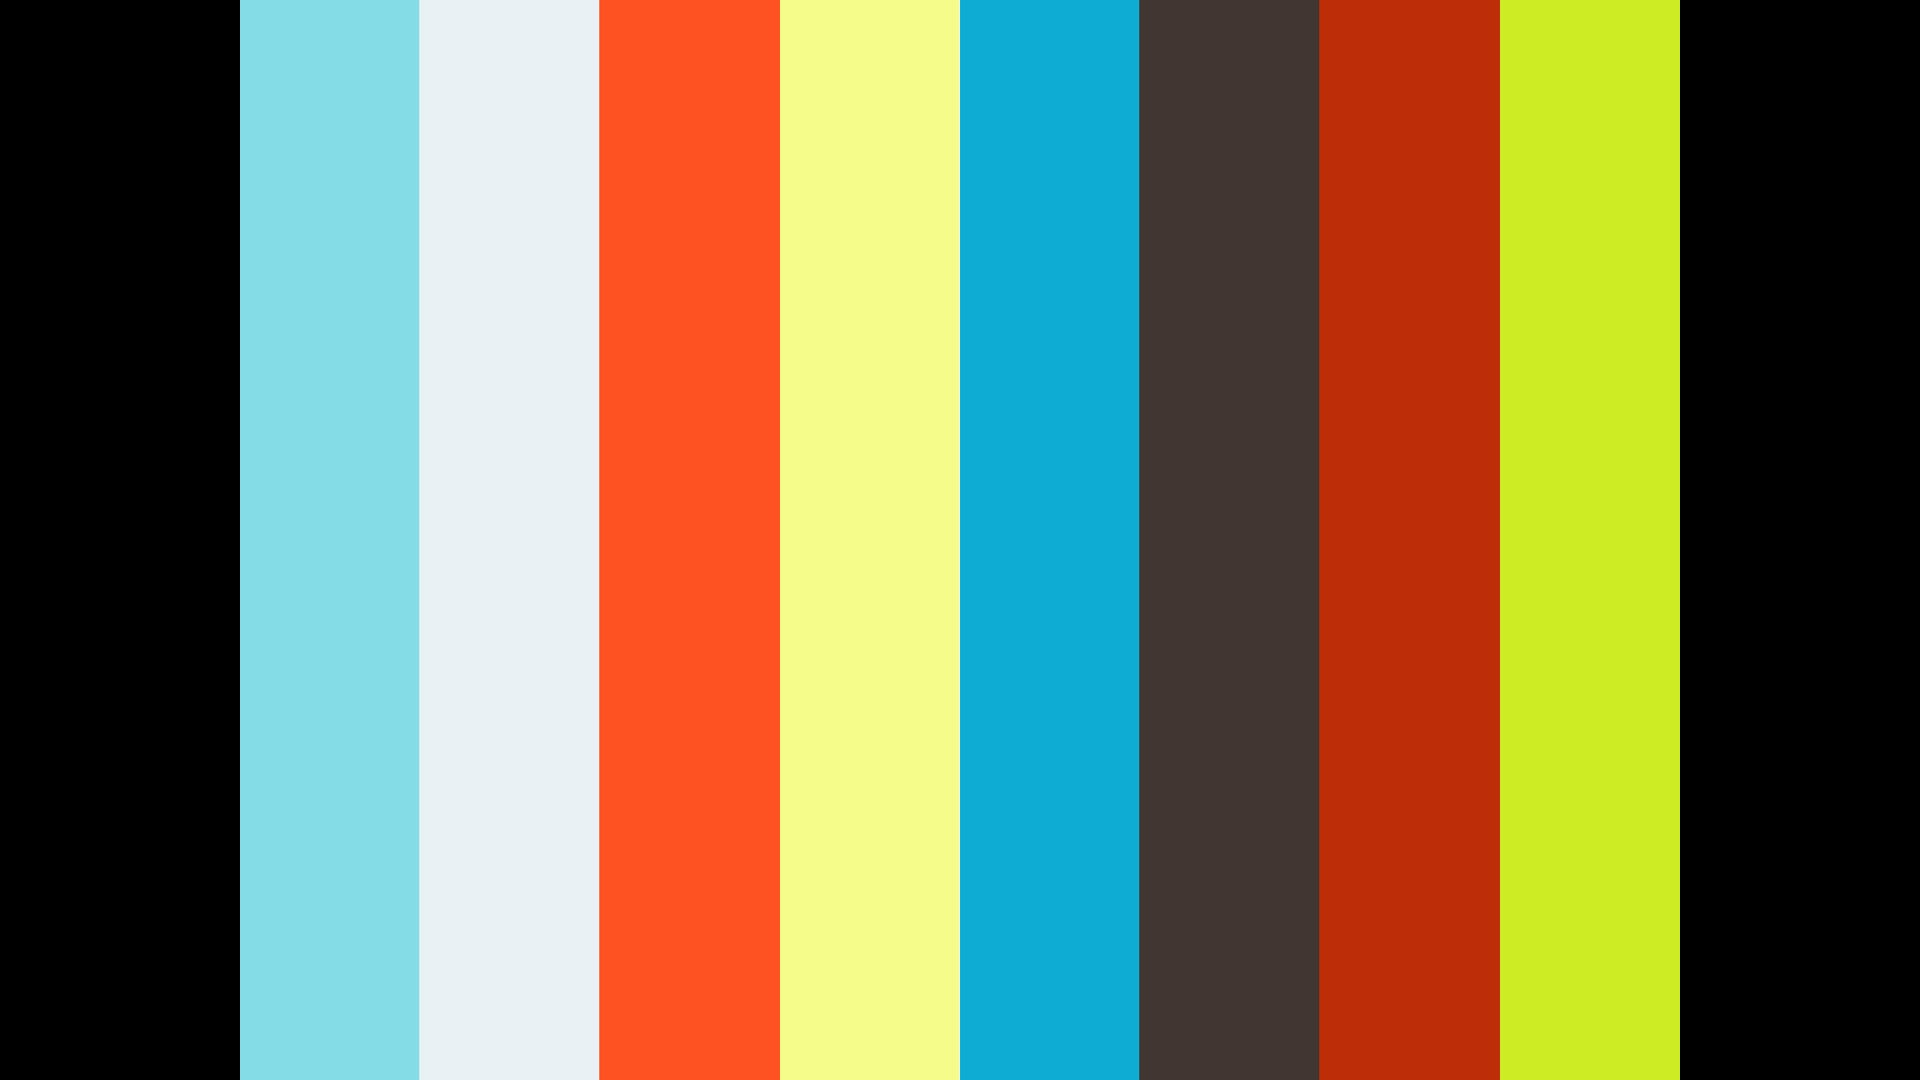 Should New Zealanders have a constitutional right to privacy?